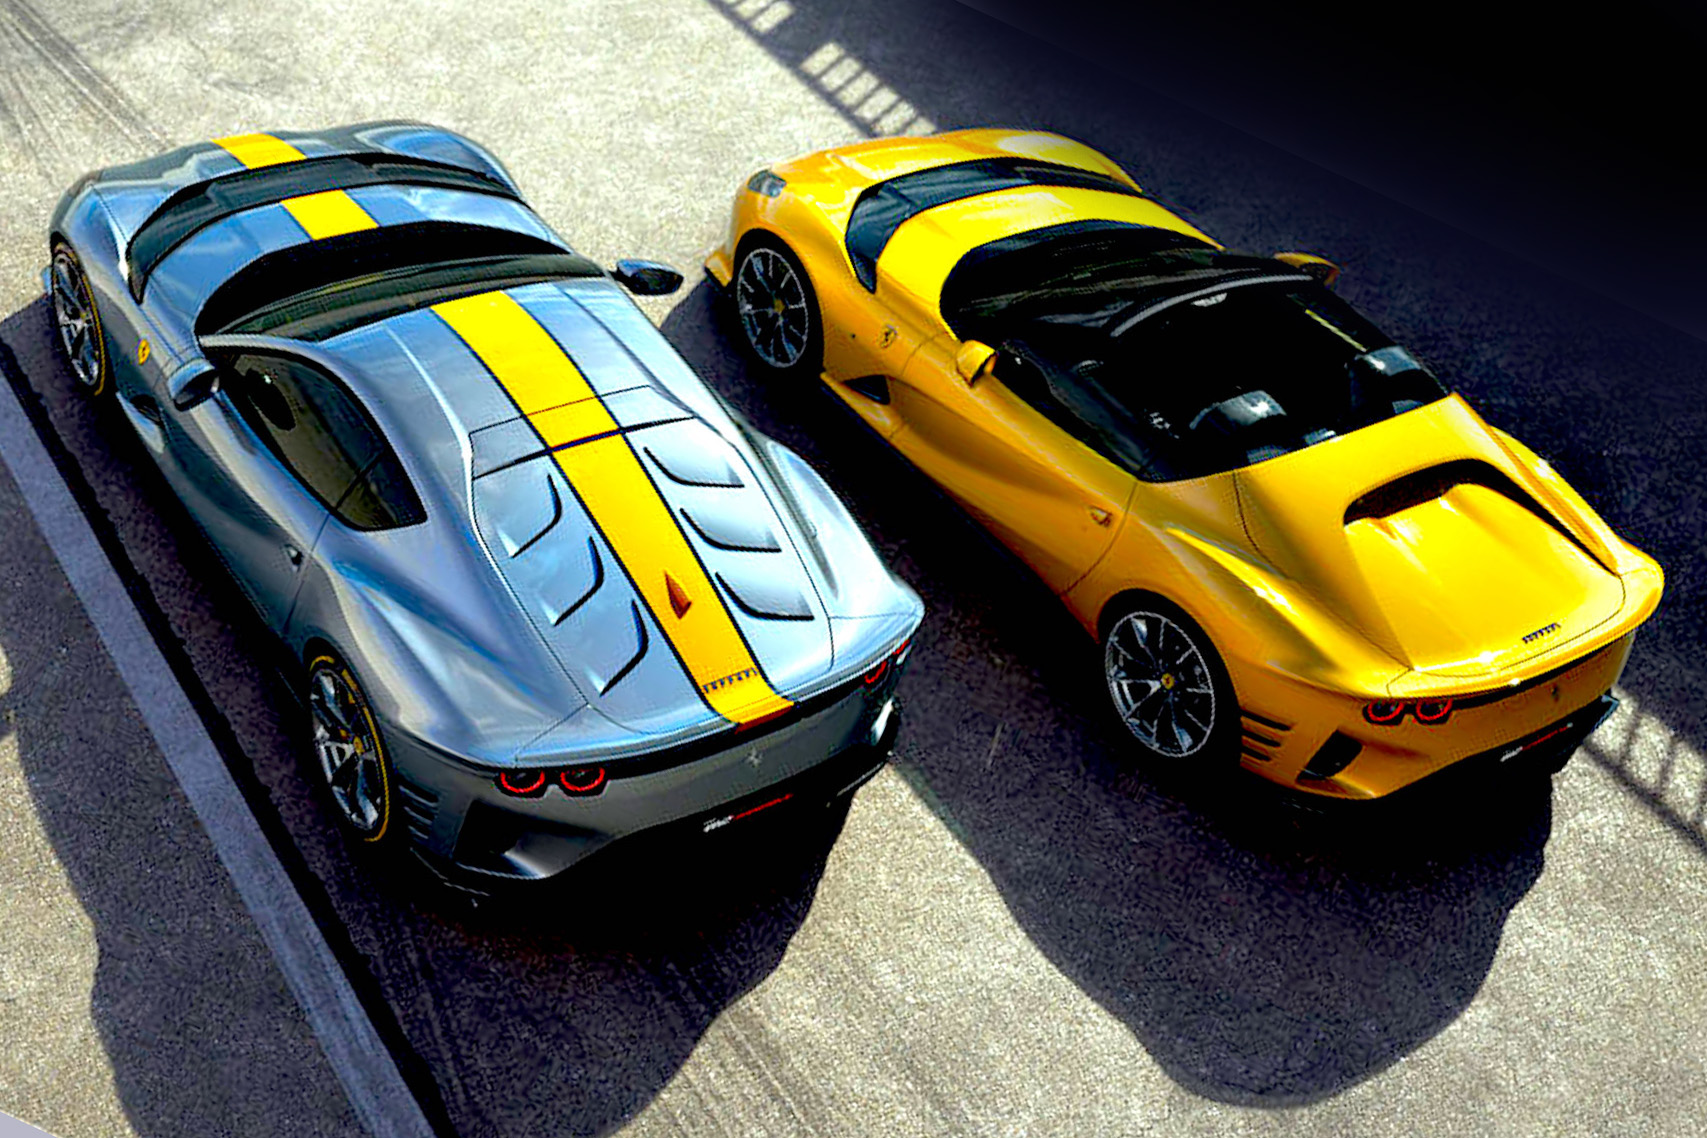 COMPETIZIONE —  FERRARI'S RECORD SUPERFAST TWINS